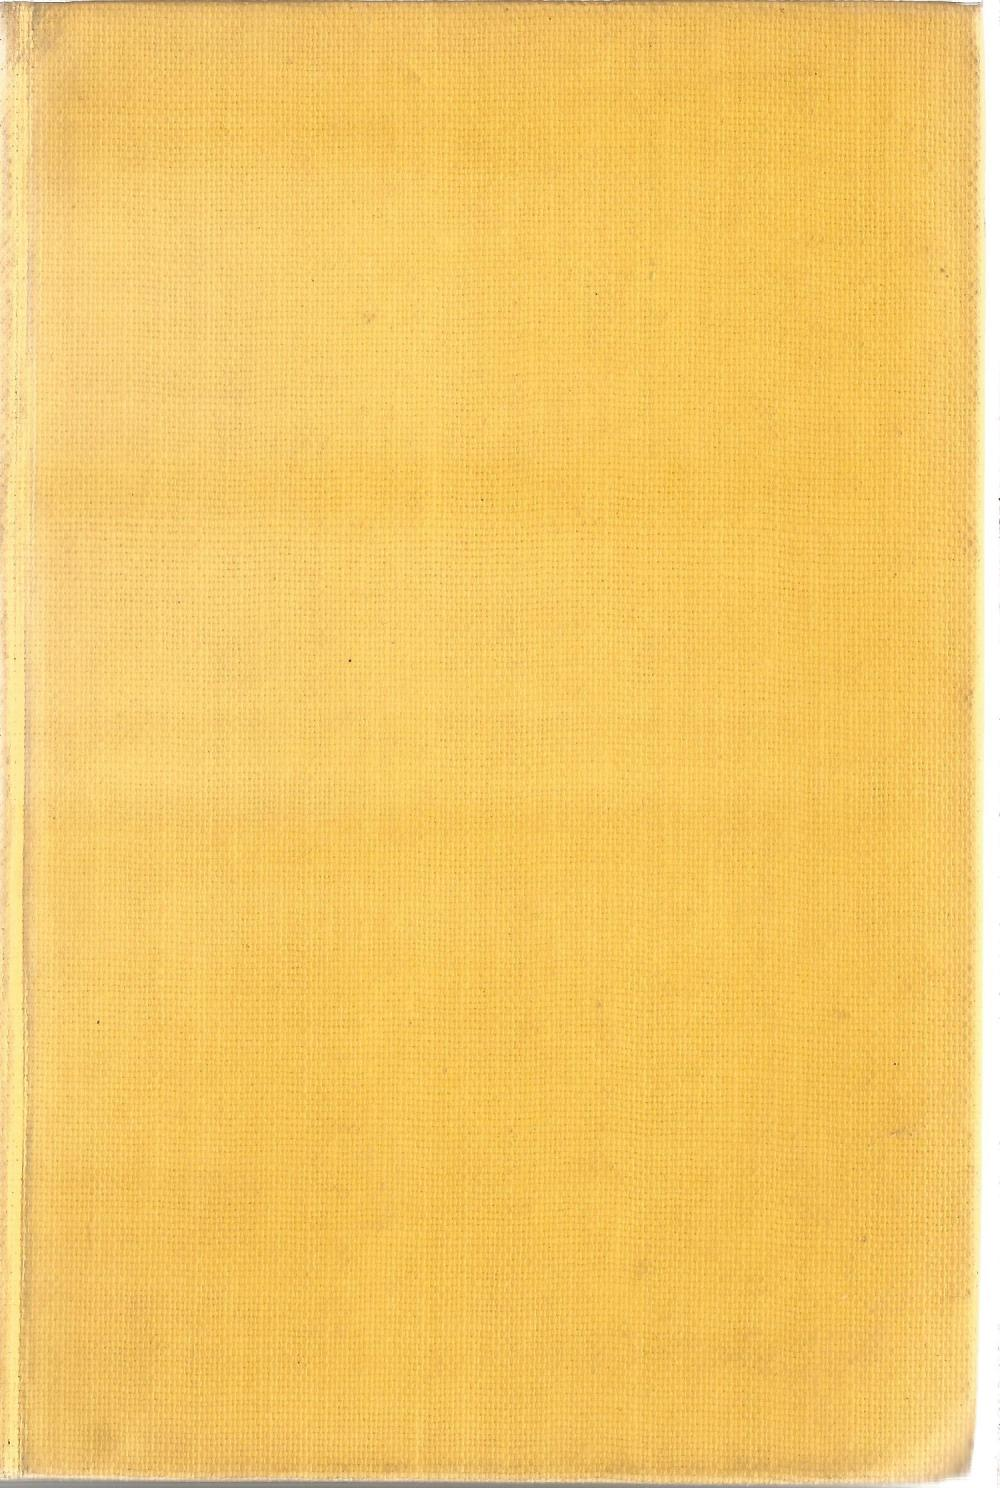 Bernard Shaw His Life and Personality by Hesketh Pearson. Unsigned hardback book with no dust jacket